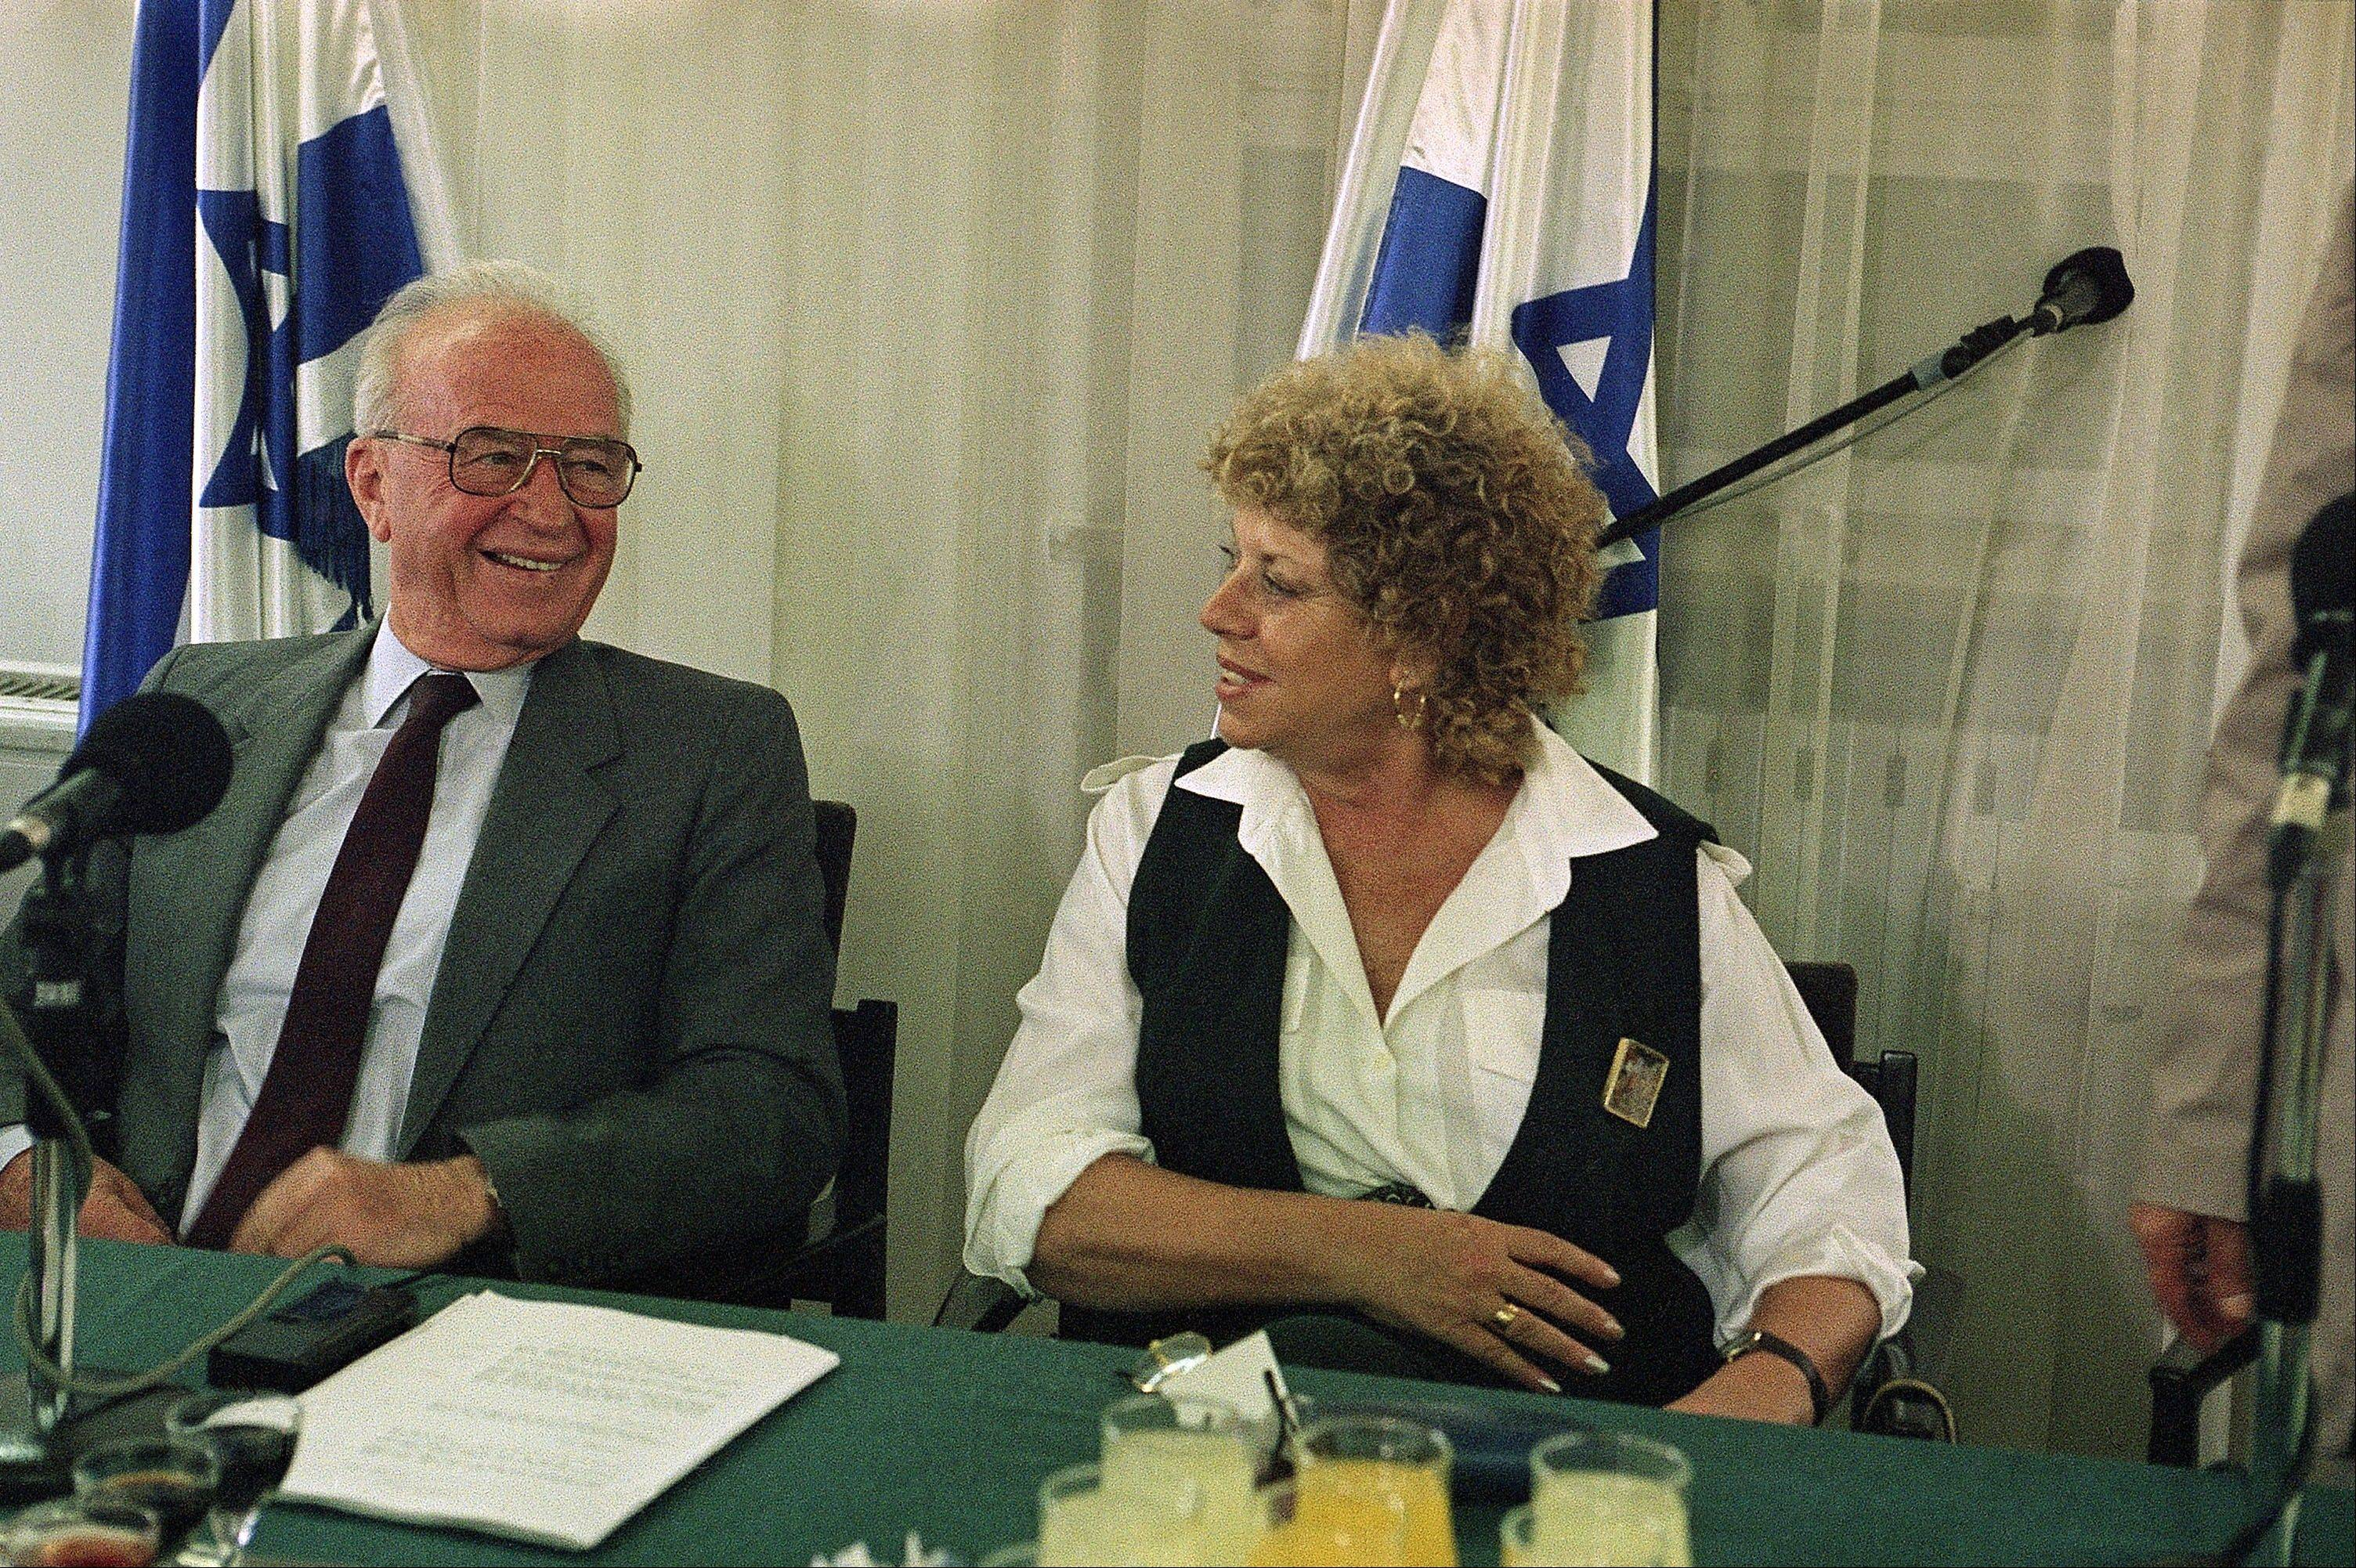 Israeli Prime Minister Yitzhak Rabin and Education Minister Shulamit Aloni share a laugh during the signing of a teacher's union contract at the Prime Minister's office in Jerusalem in 1963.